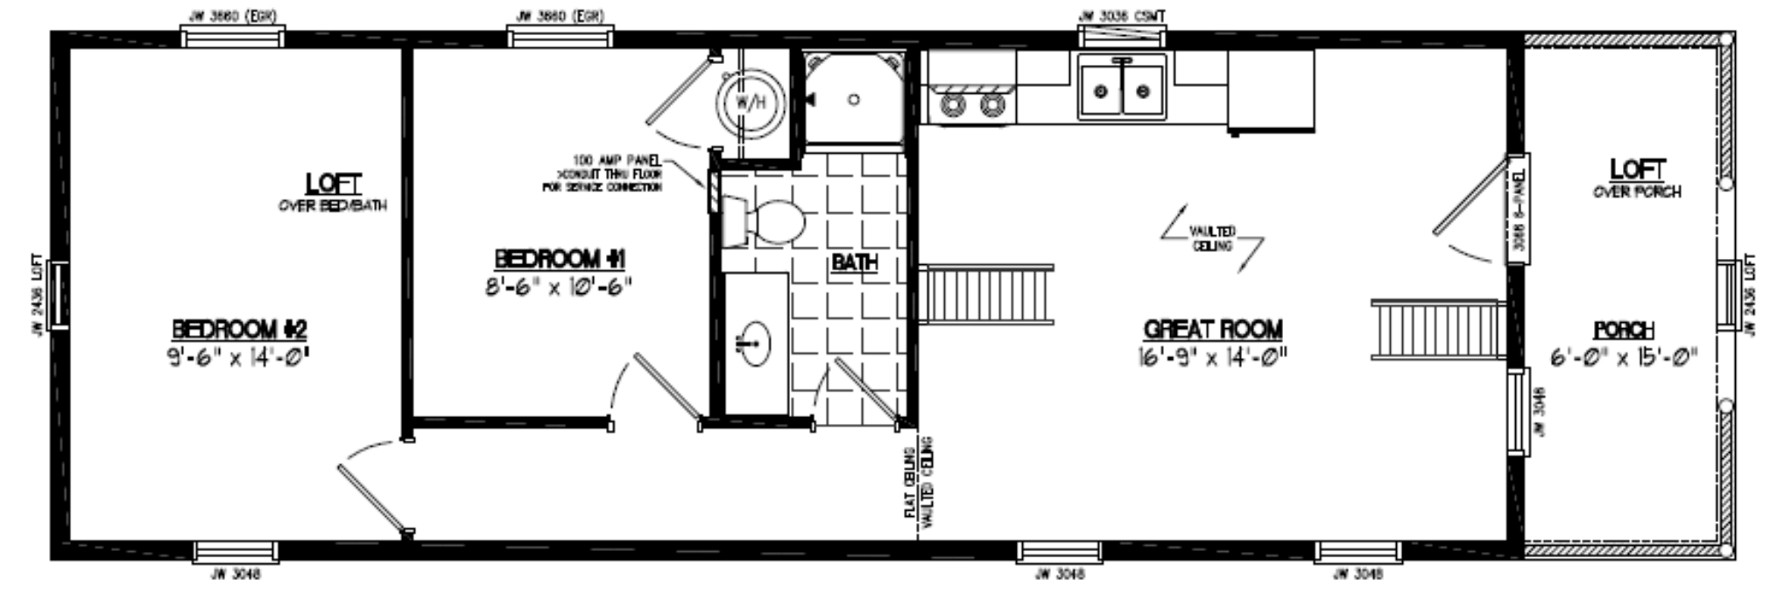 Adirondack house plans house plans for Adirondack home plans